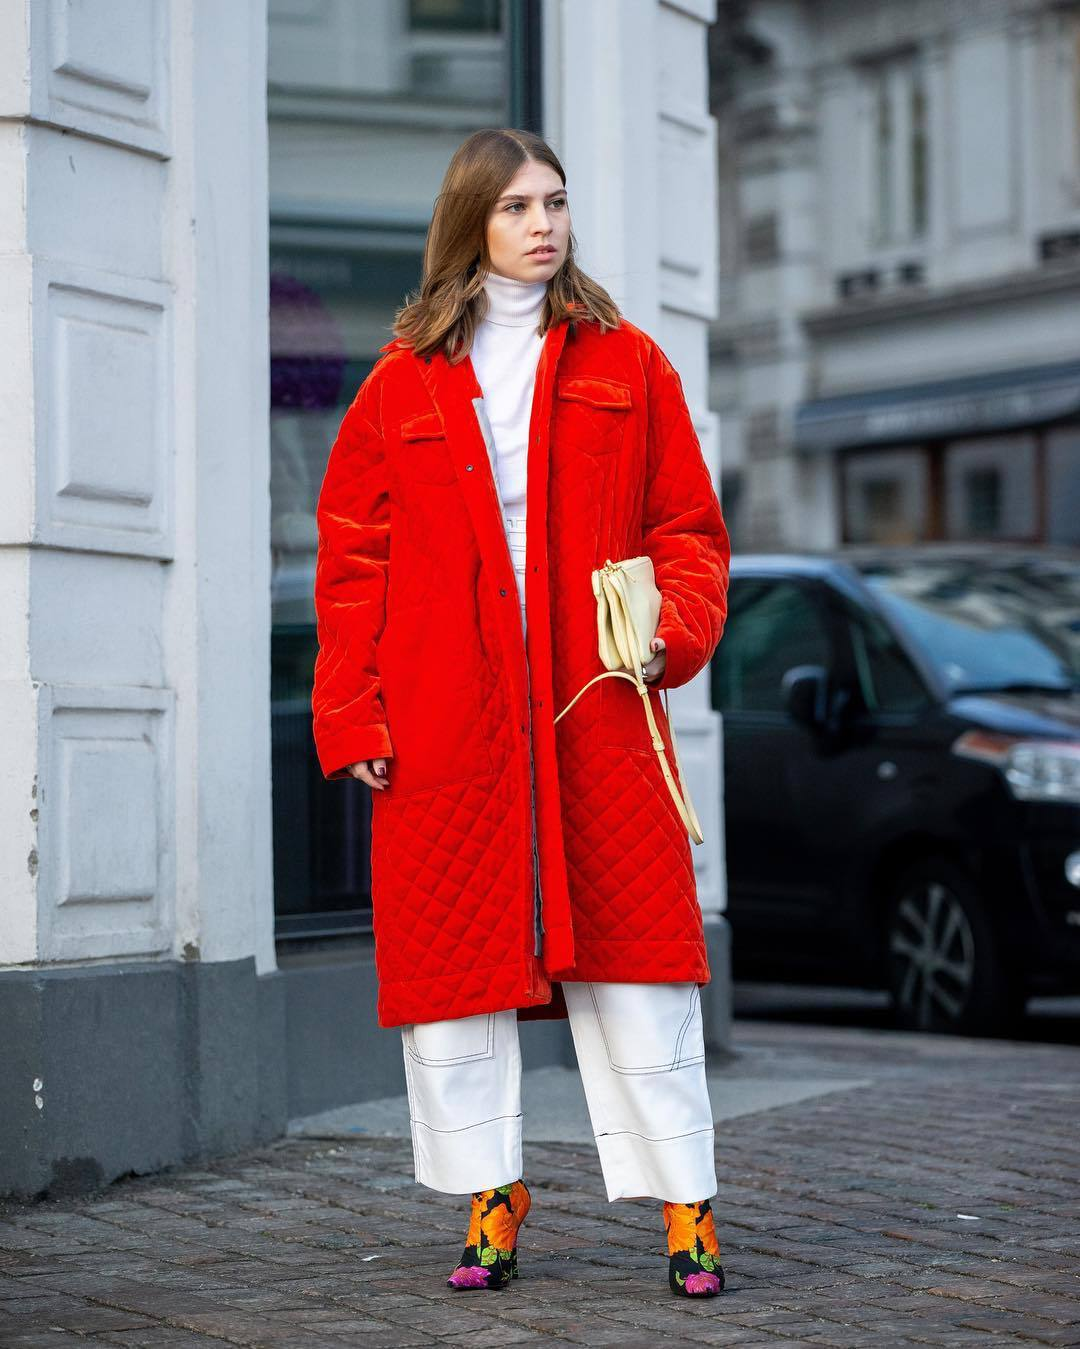 Pescador Ataque de nervios entidad  shoes, sock boots, balenciaga, floral, wide-leg pants, white pants, red  coat, white turtleneck top, crossbody bag, oversized coat - Wheretoget